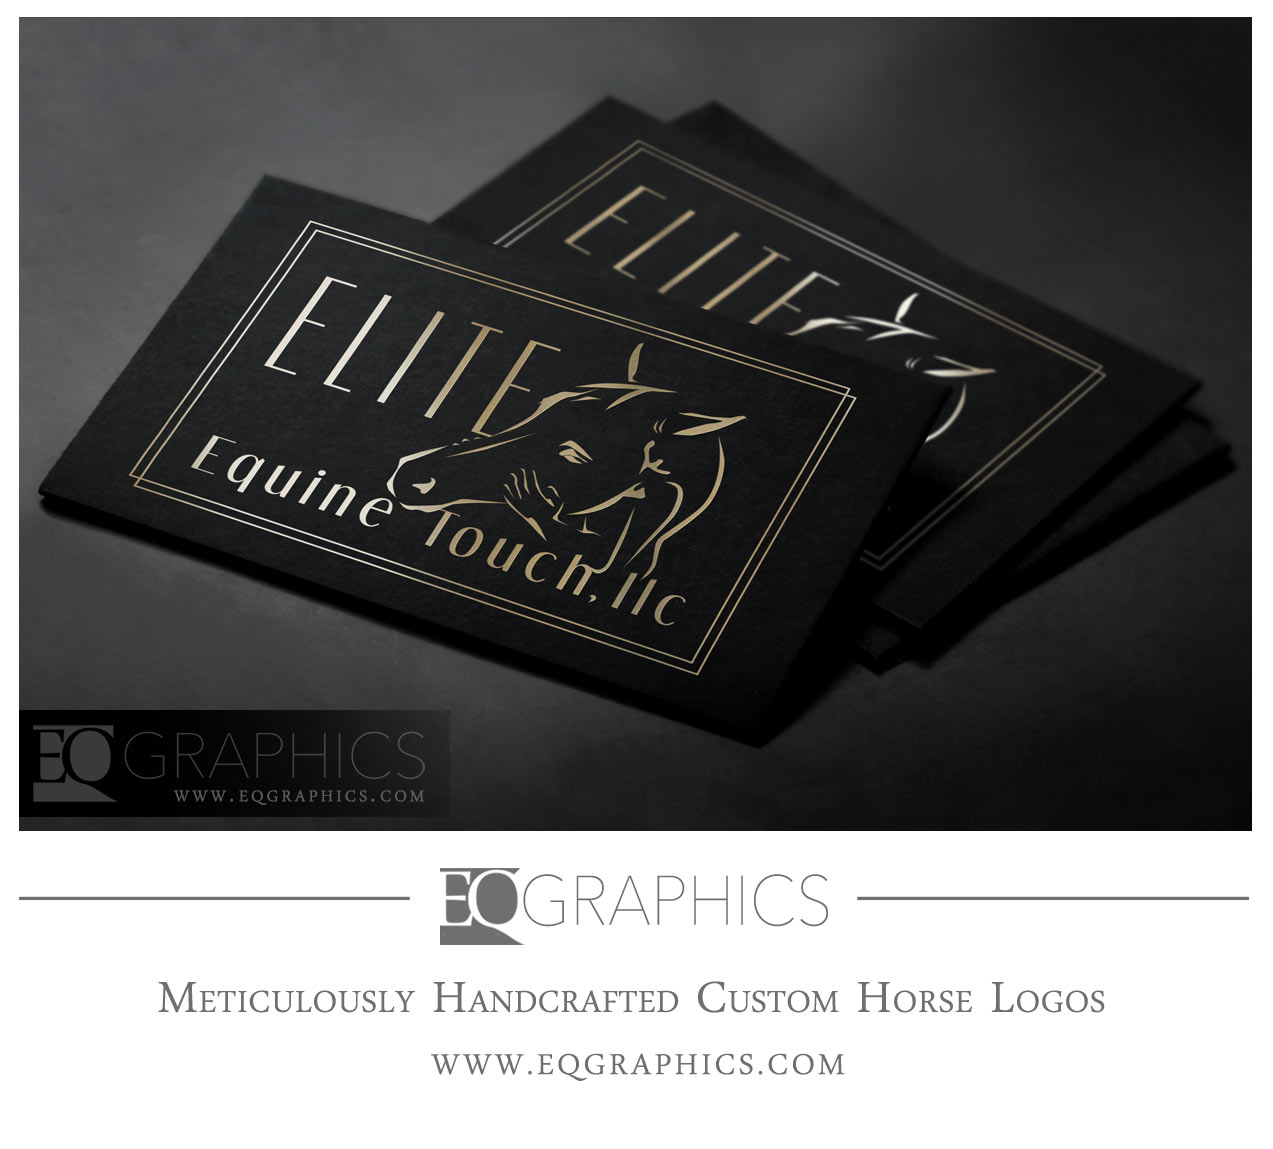 Elite Equine Touch Massage Logo Horse Human Hands Design by EQ Graphics Designer Equine Logos